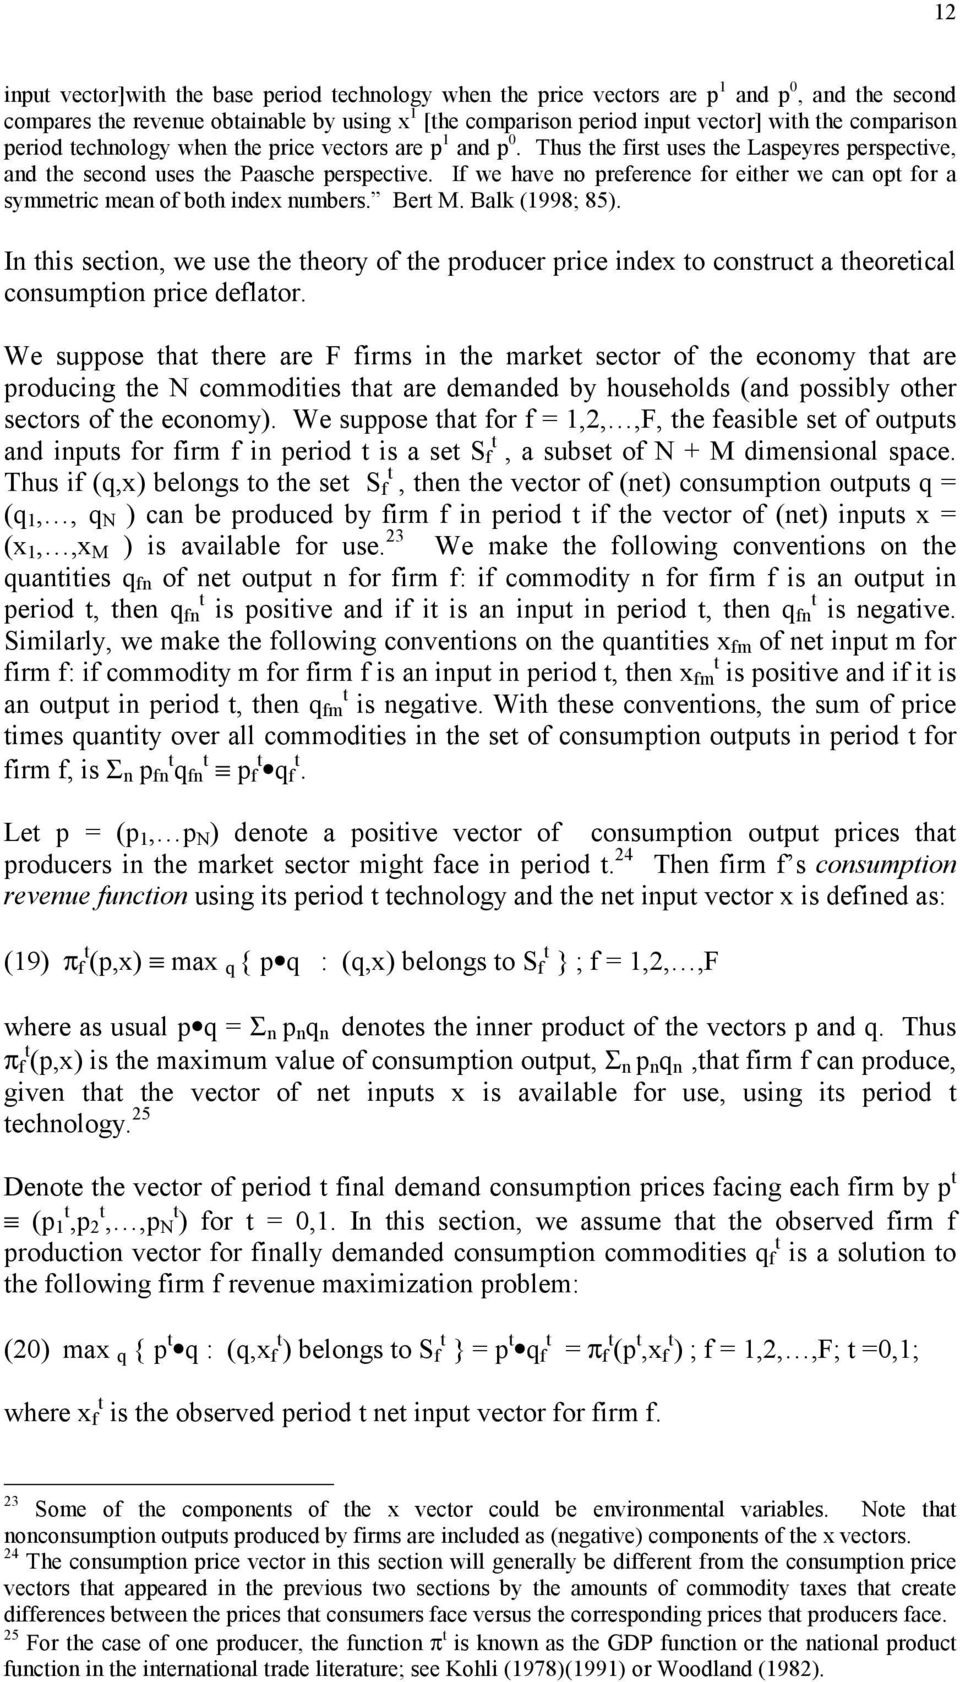 If we have no preference for either we can opt for a symmetric mean of both index numbers. Bert M. Balk (1998; 85).